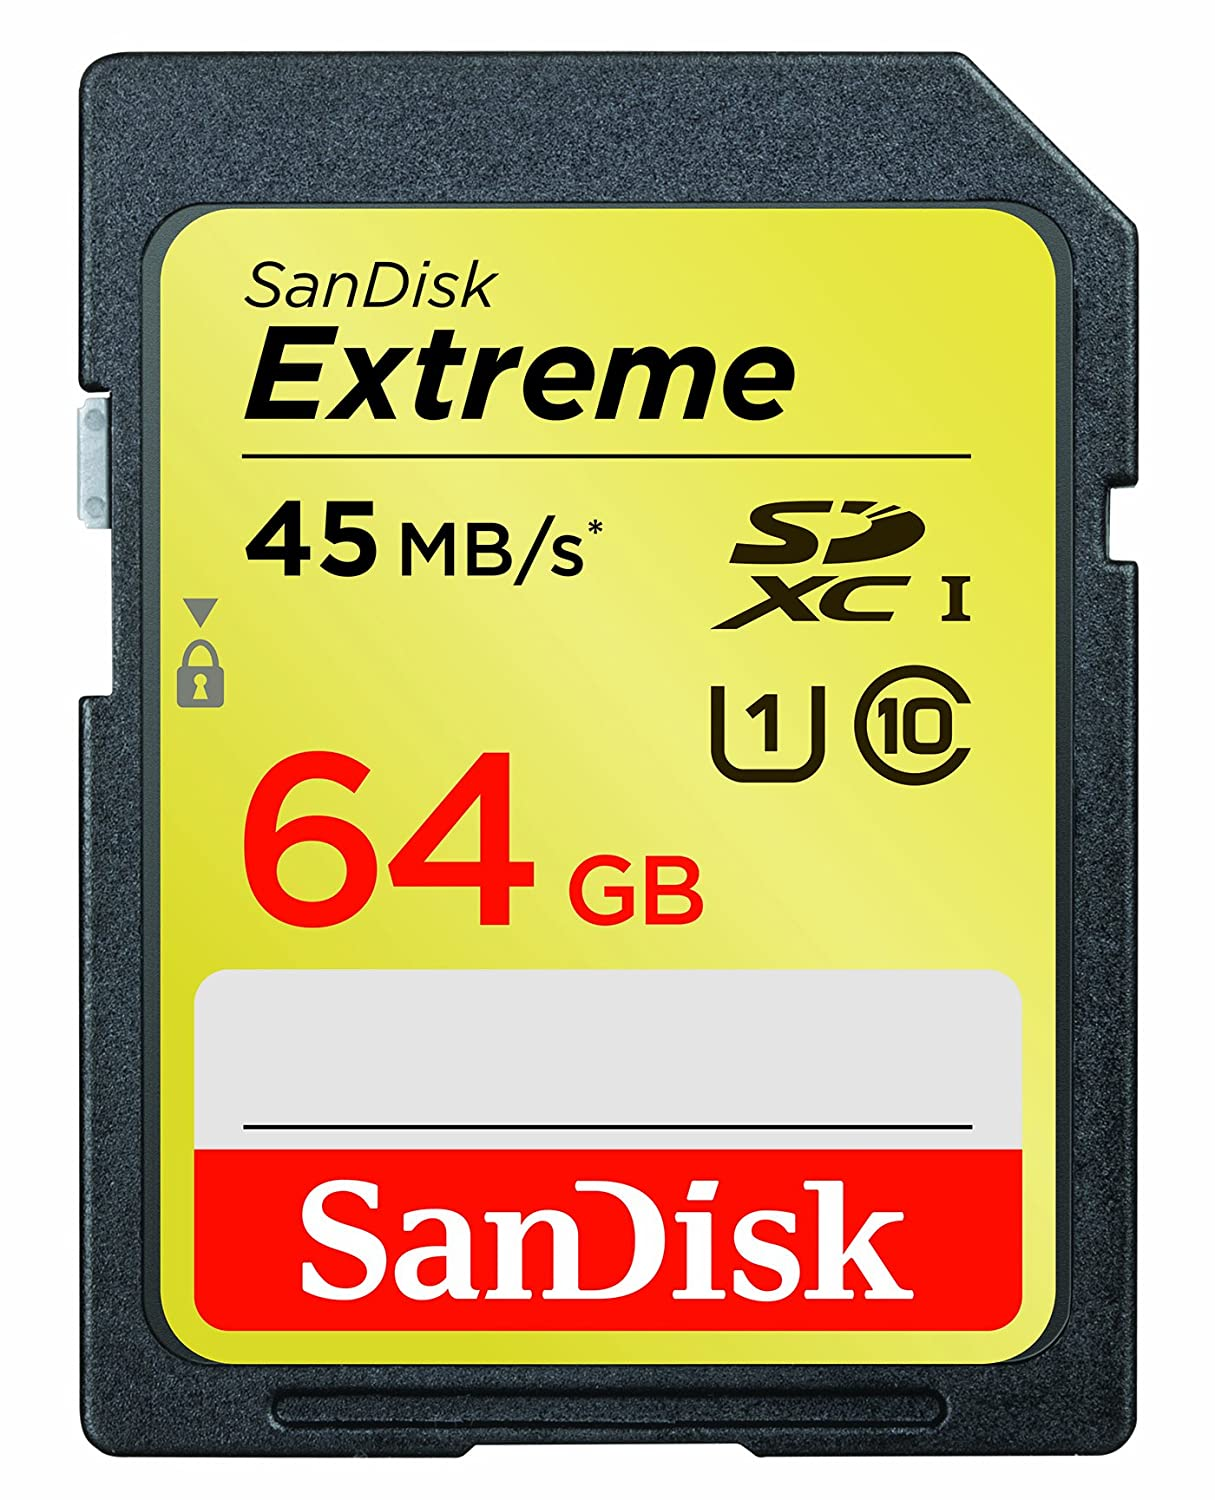 SanDisk SDSDX-064G-FFP 64GB SD Card